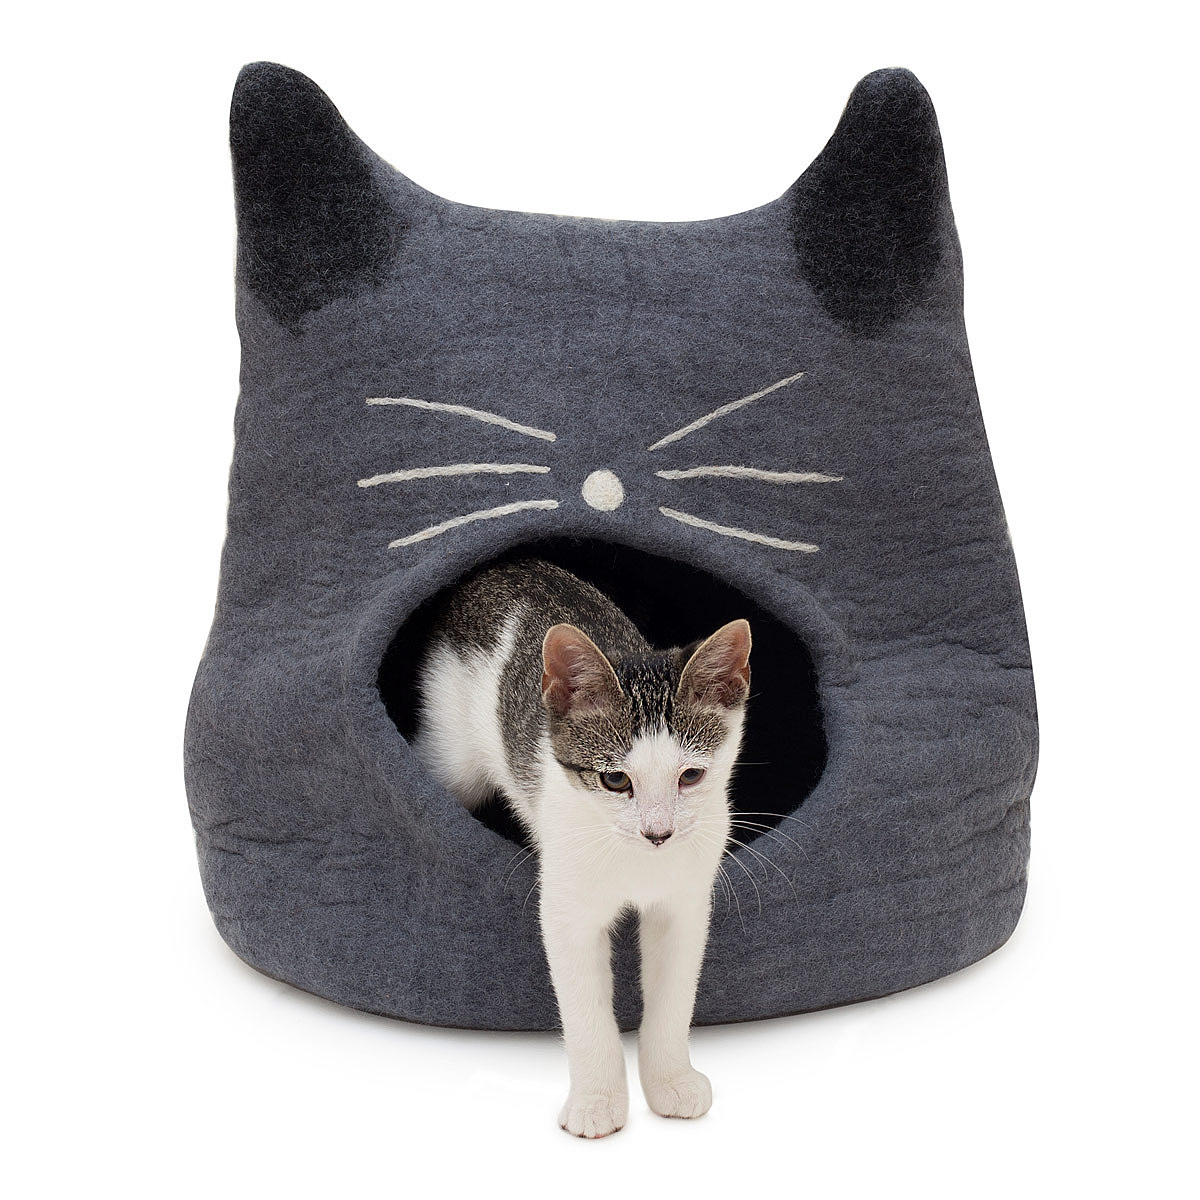 Cute Pet Beds For Dogs And Cats Home Amp Design